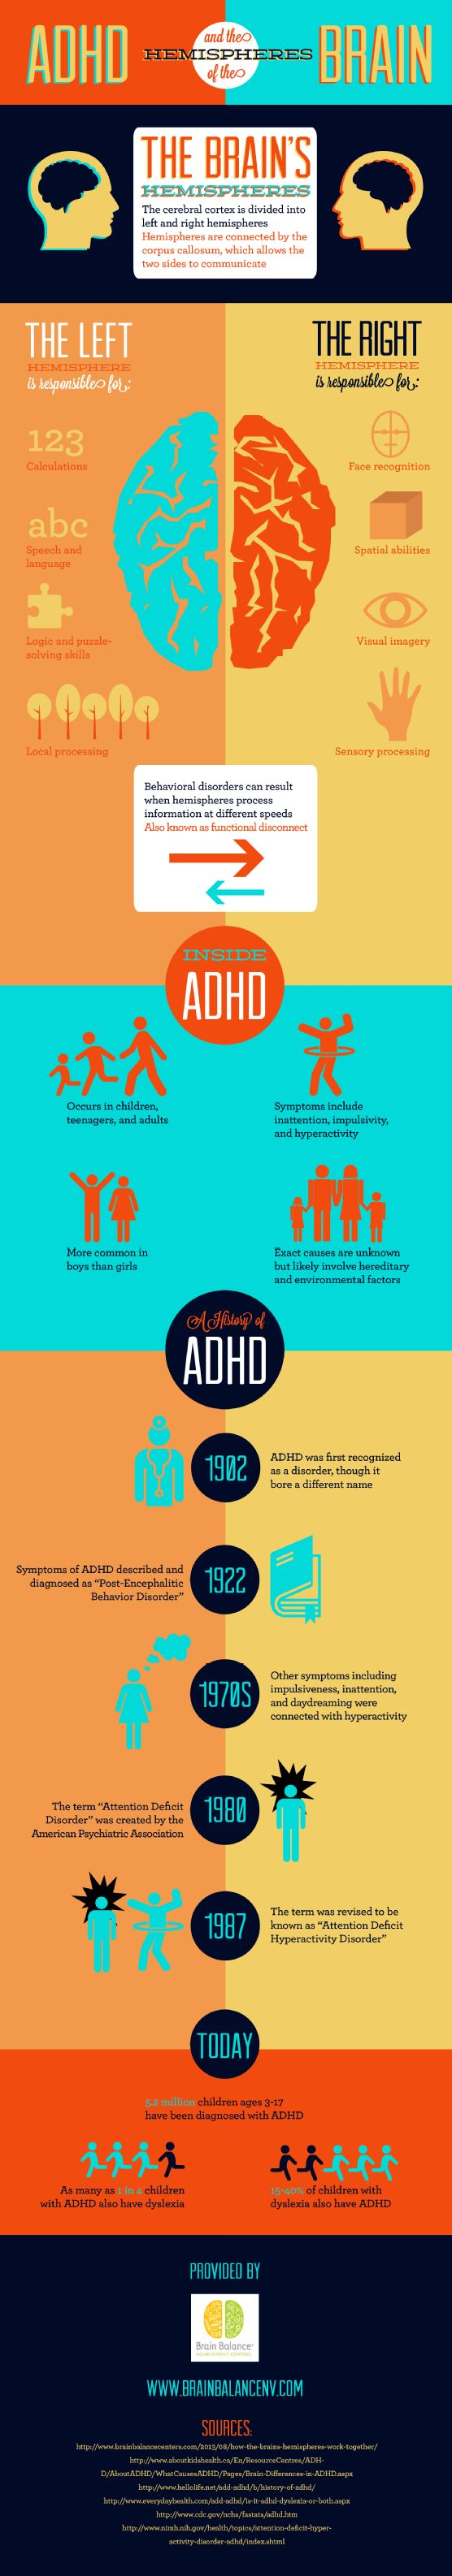 """Even though it bore a different name, ADHD was first recognized as a disorder in 1902. In 1980, the American Psychiatric Association coined the term """"Attention Deficit Disorder."""" Seven years later, the term was revised to """"Attention Deficit Hyperactivity Disorder."""" Learn more about the history of ADHD in this infographic."""